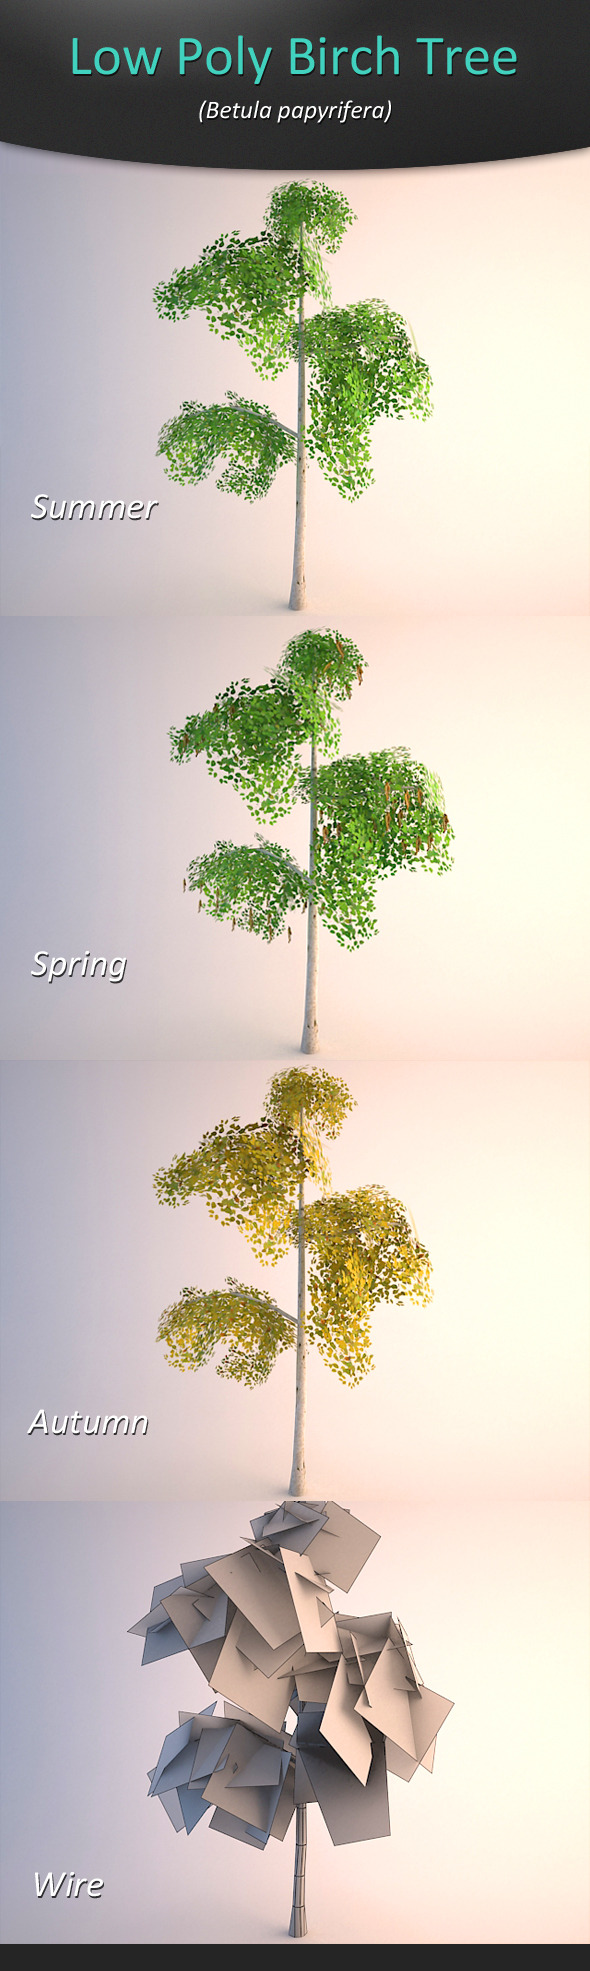 3DOcean Low Poly Birch Tree 1782480